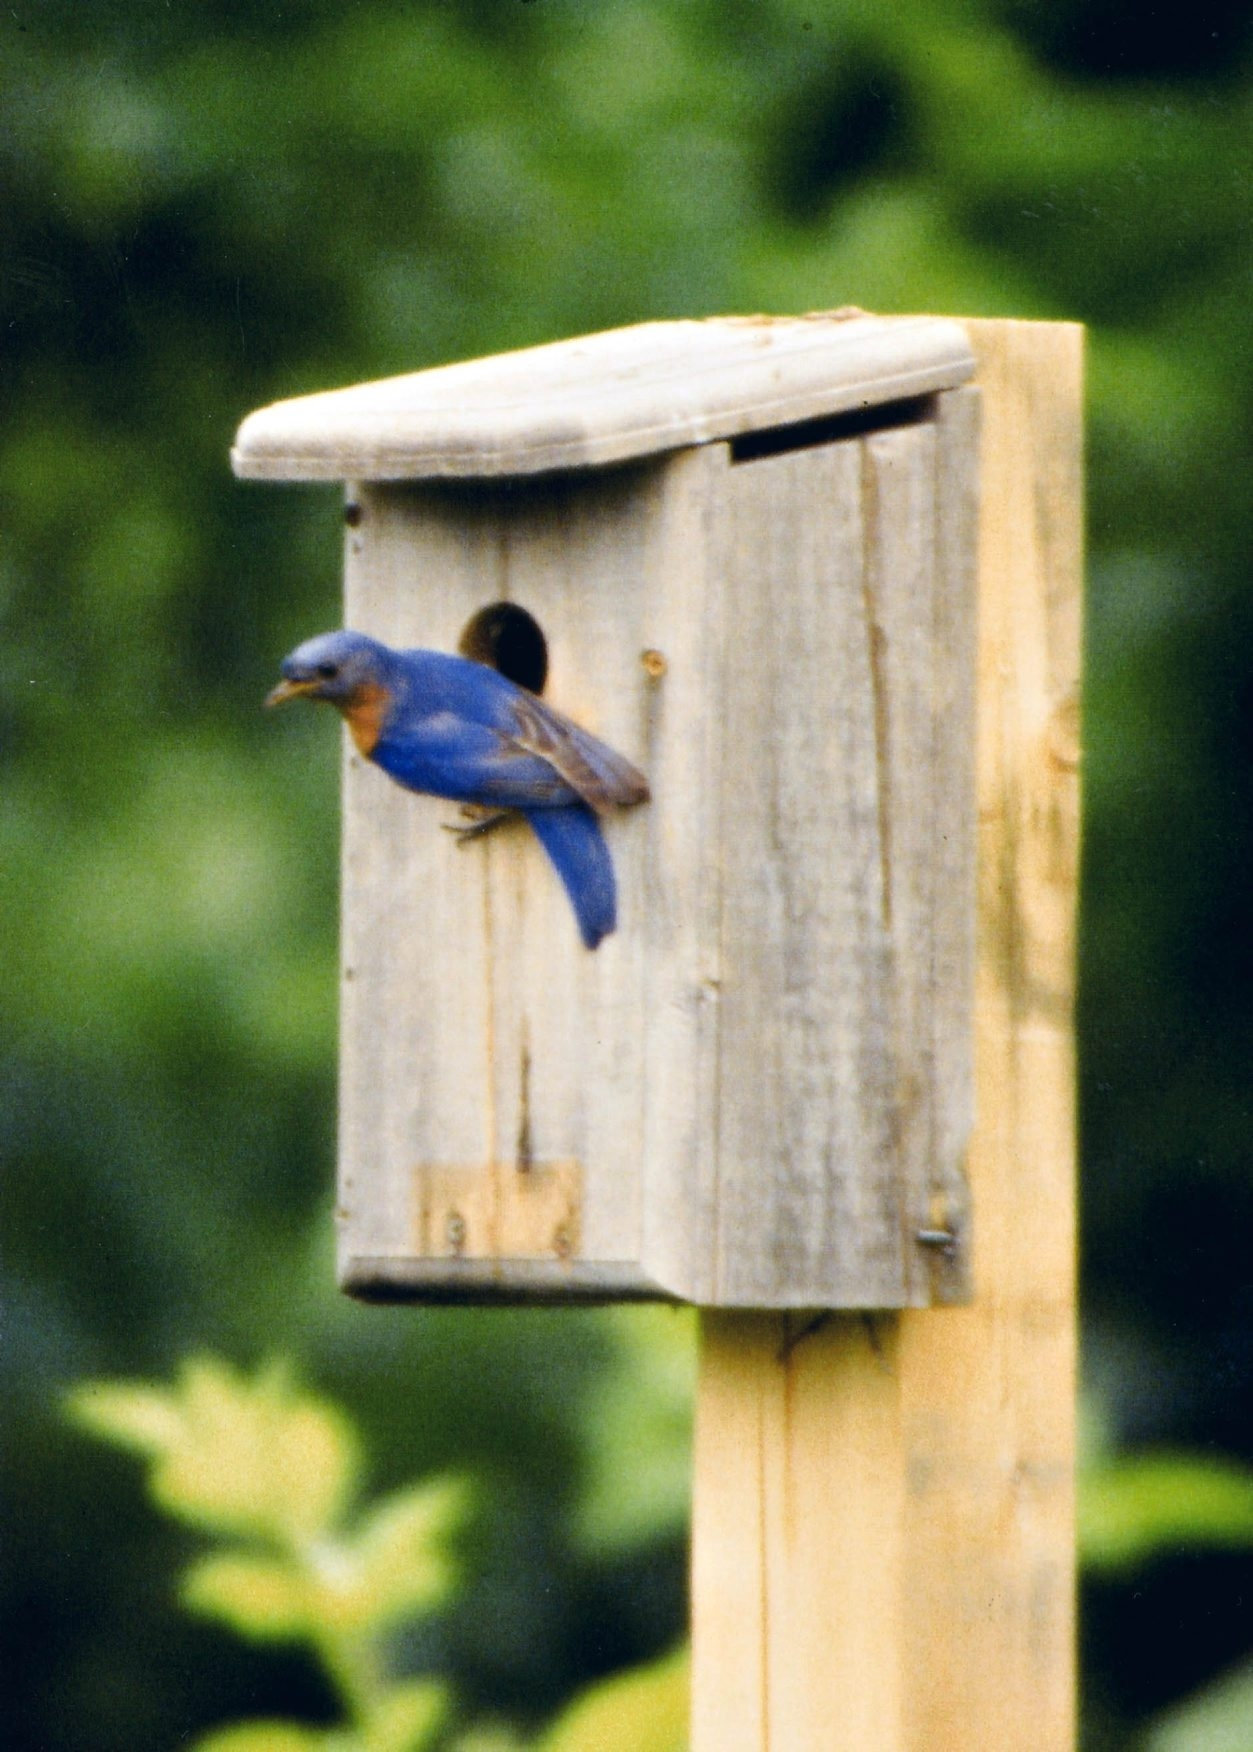 Nesting boxes have increased the number of Eastern bluebirds.